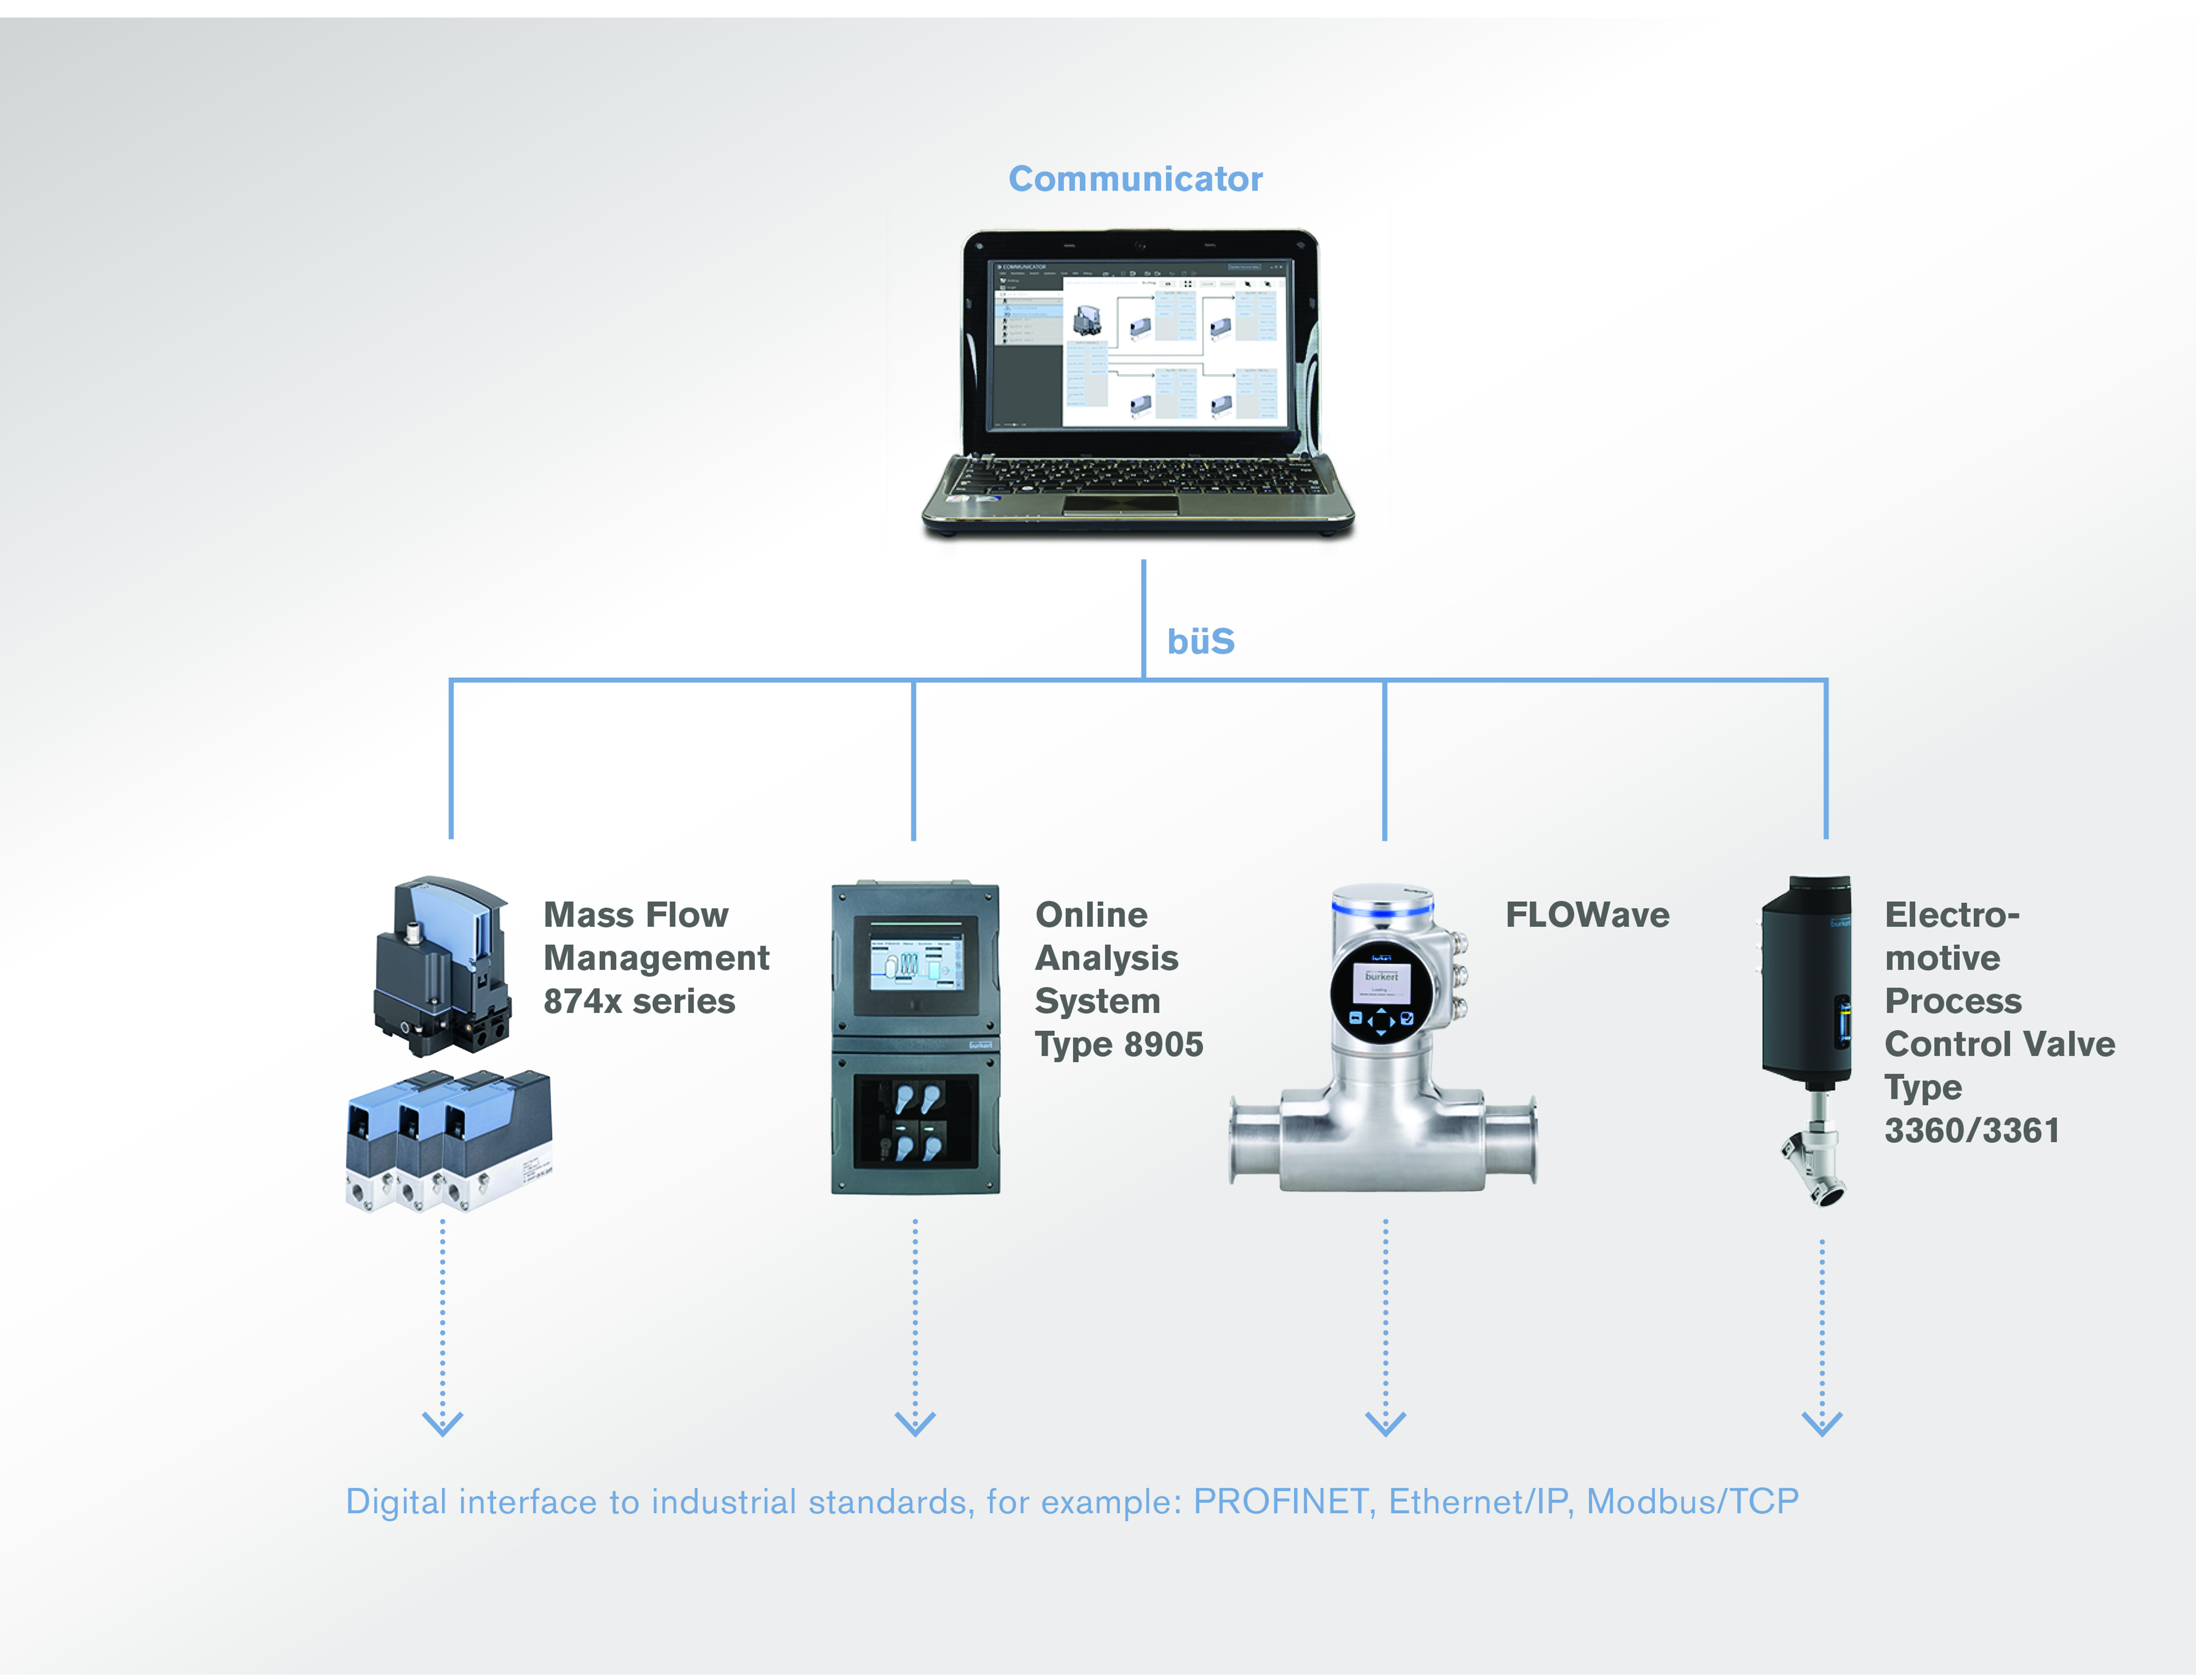 Using Industry 4.0 to optimise process control